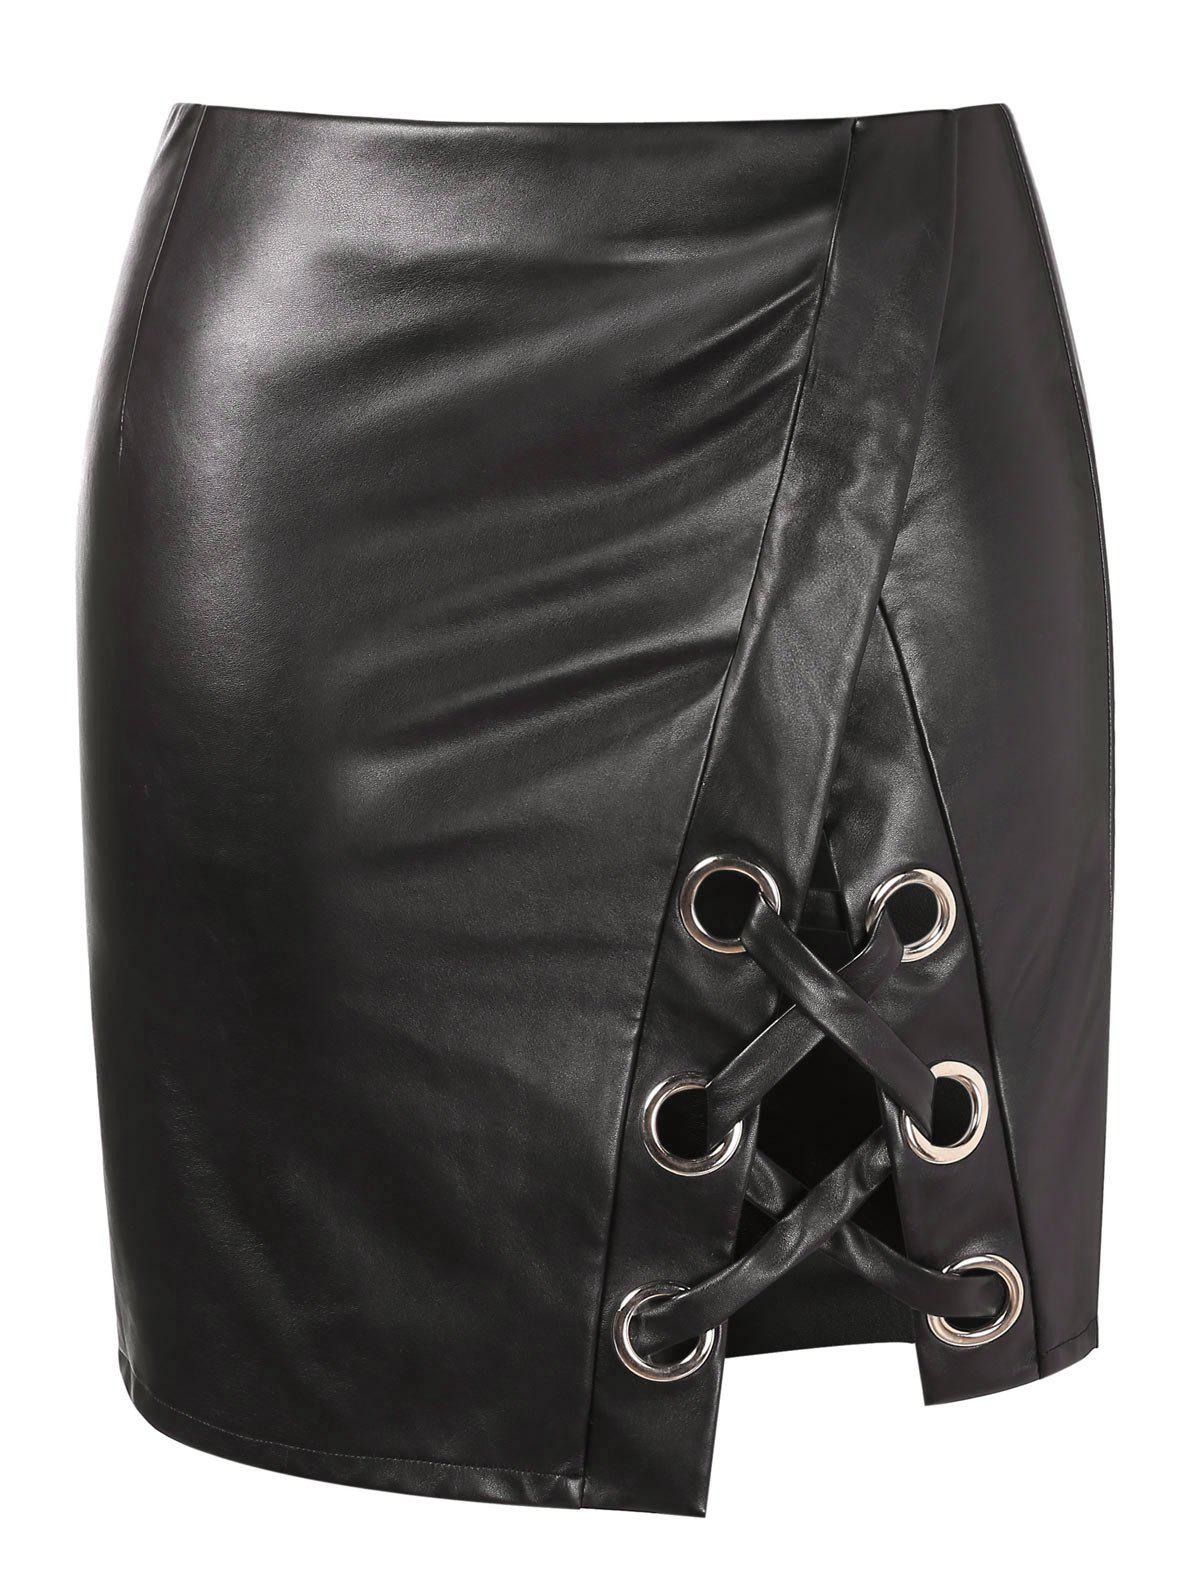 Store Criss Cross Plus Size Faux Leather Skirt